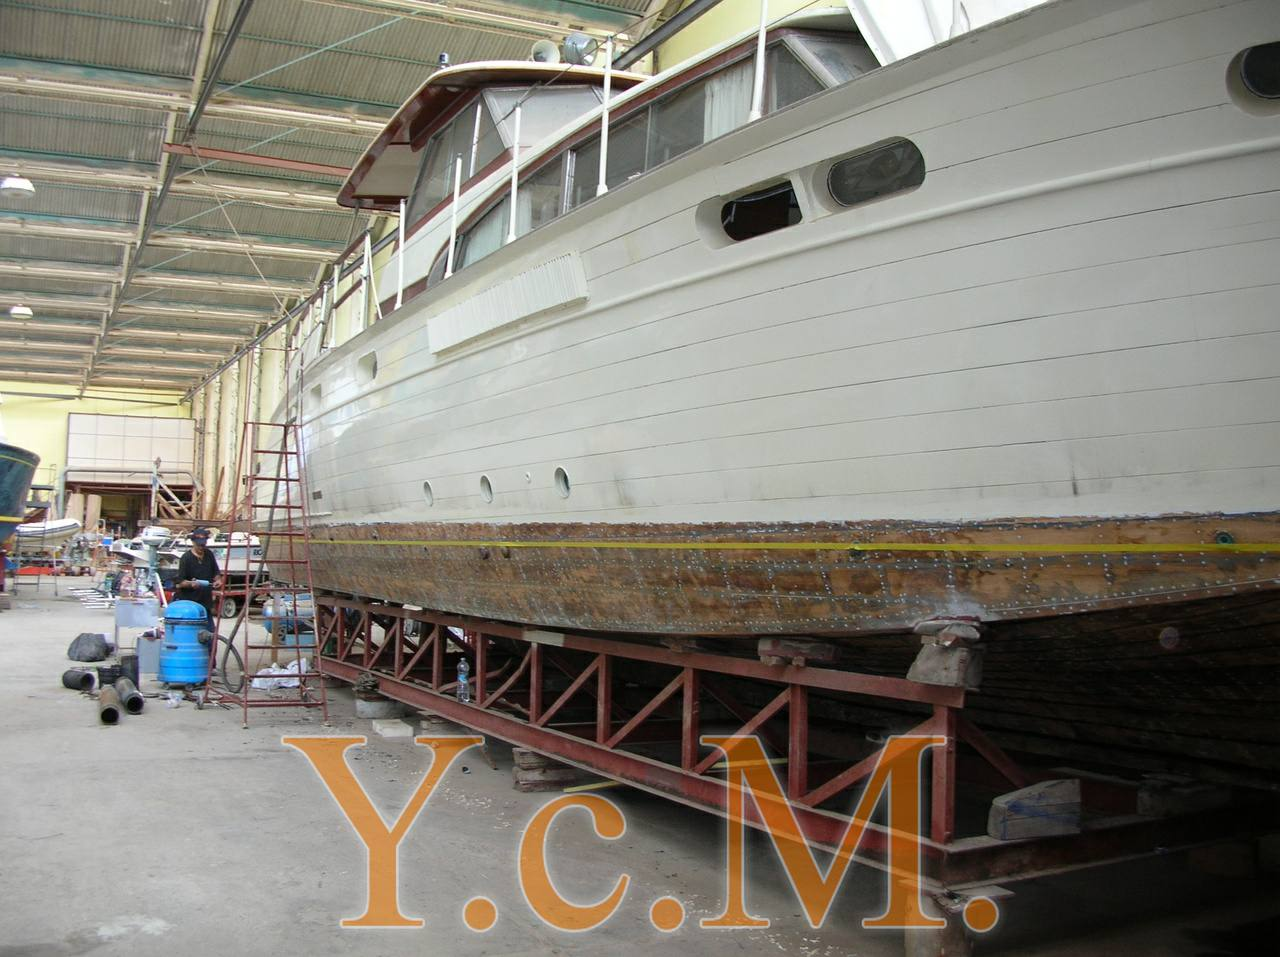 Chris craft X 55 constellation